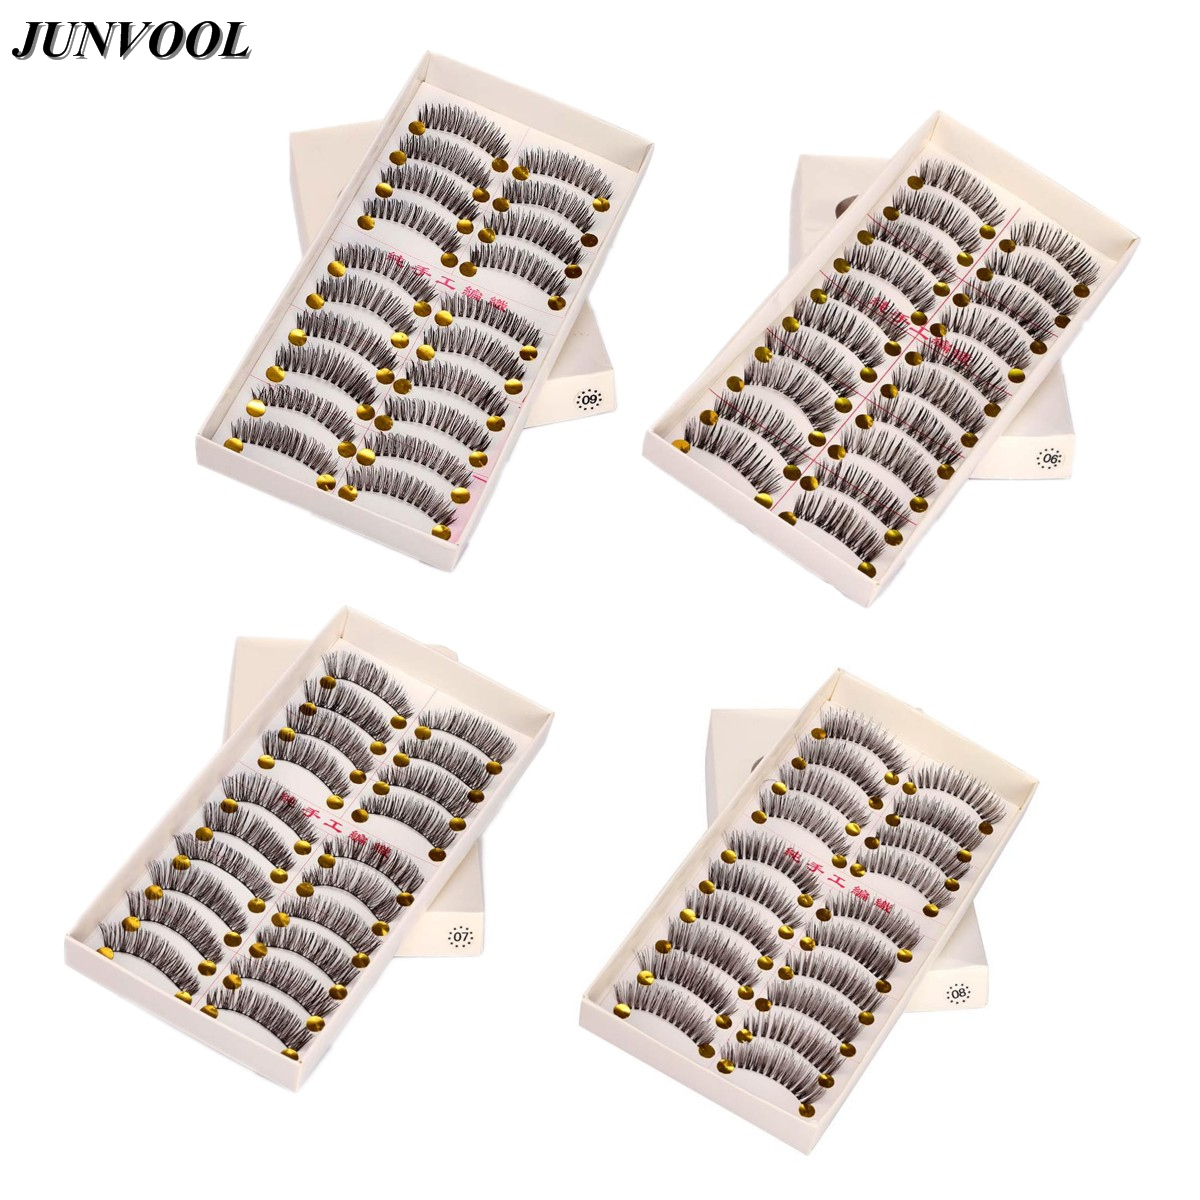 Eyelash Extension 10 Pairs Thin Natural Black Long Fake False Eyelashes Makeup Women Lady Eye Lashes Handmade Beauty Tips Bigeye